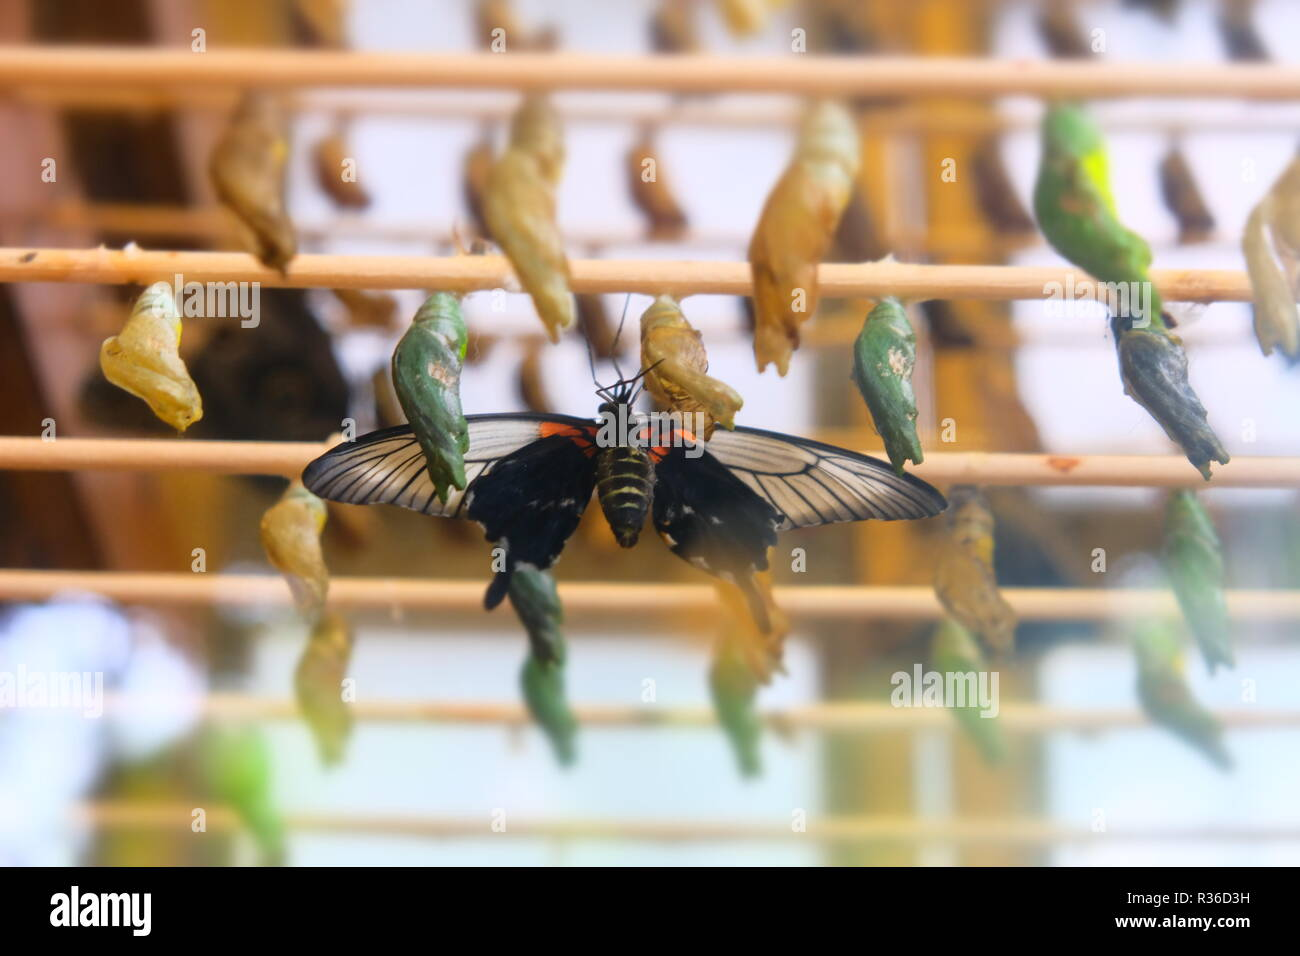 Butterfly and cocoons at Twycross Zoo - Stock Image